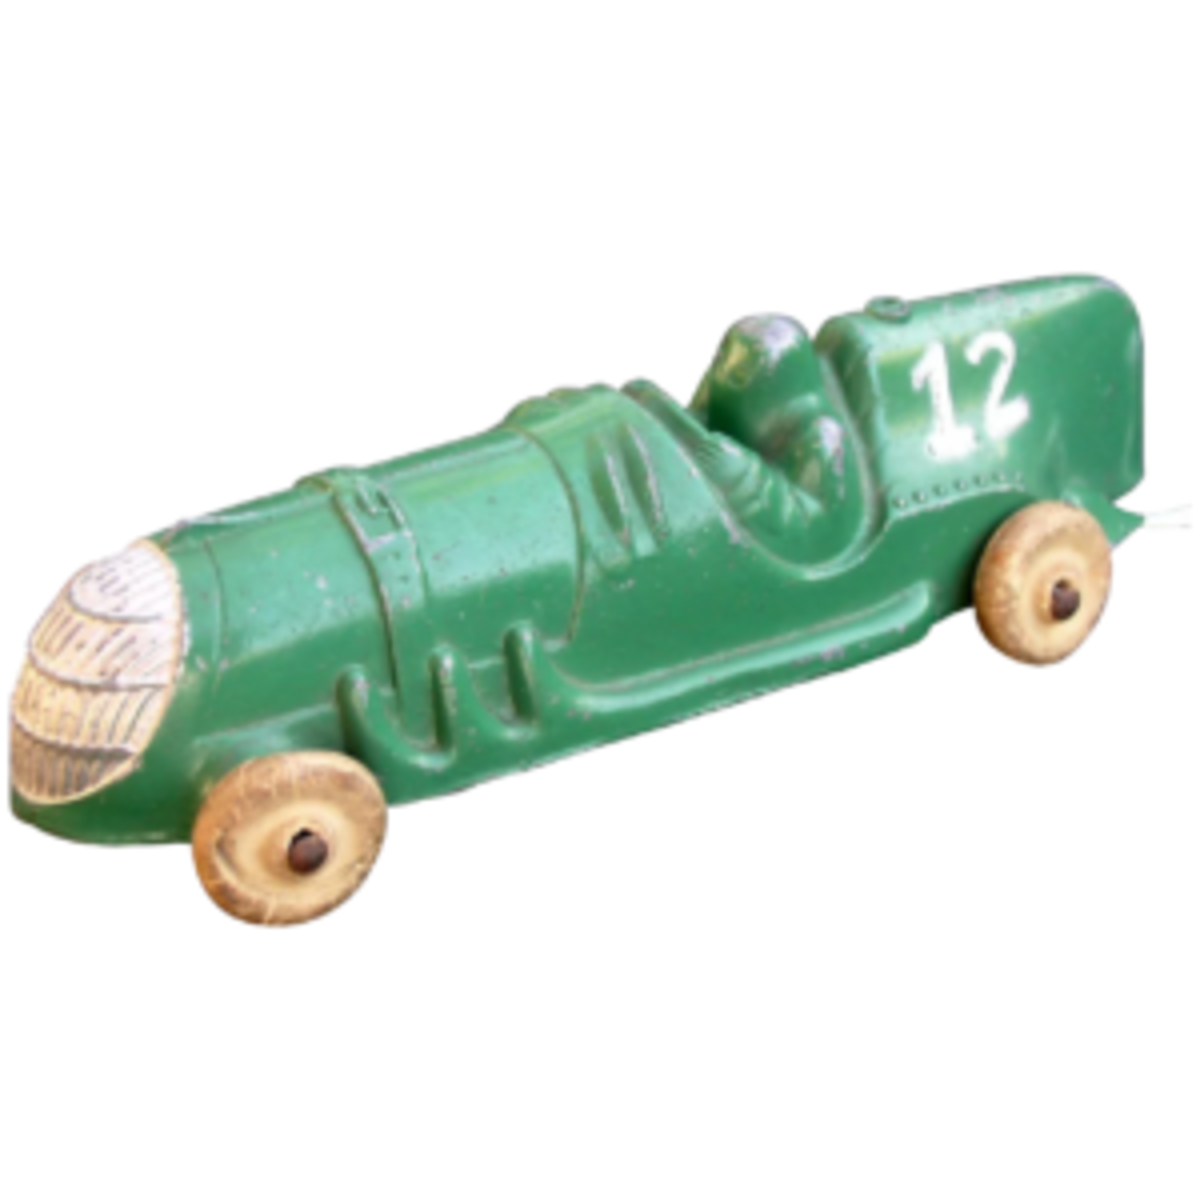 A Hubley diecast steel race car from the 1930s in green and silver; $55. Courtesy of Victorian Trinkets: rubylane.com/shop/cali4nigrl